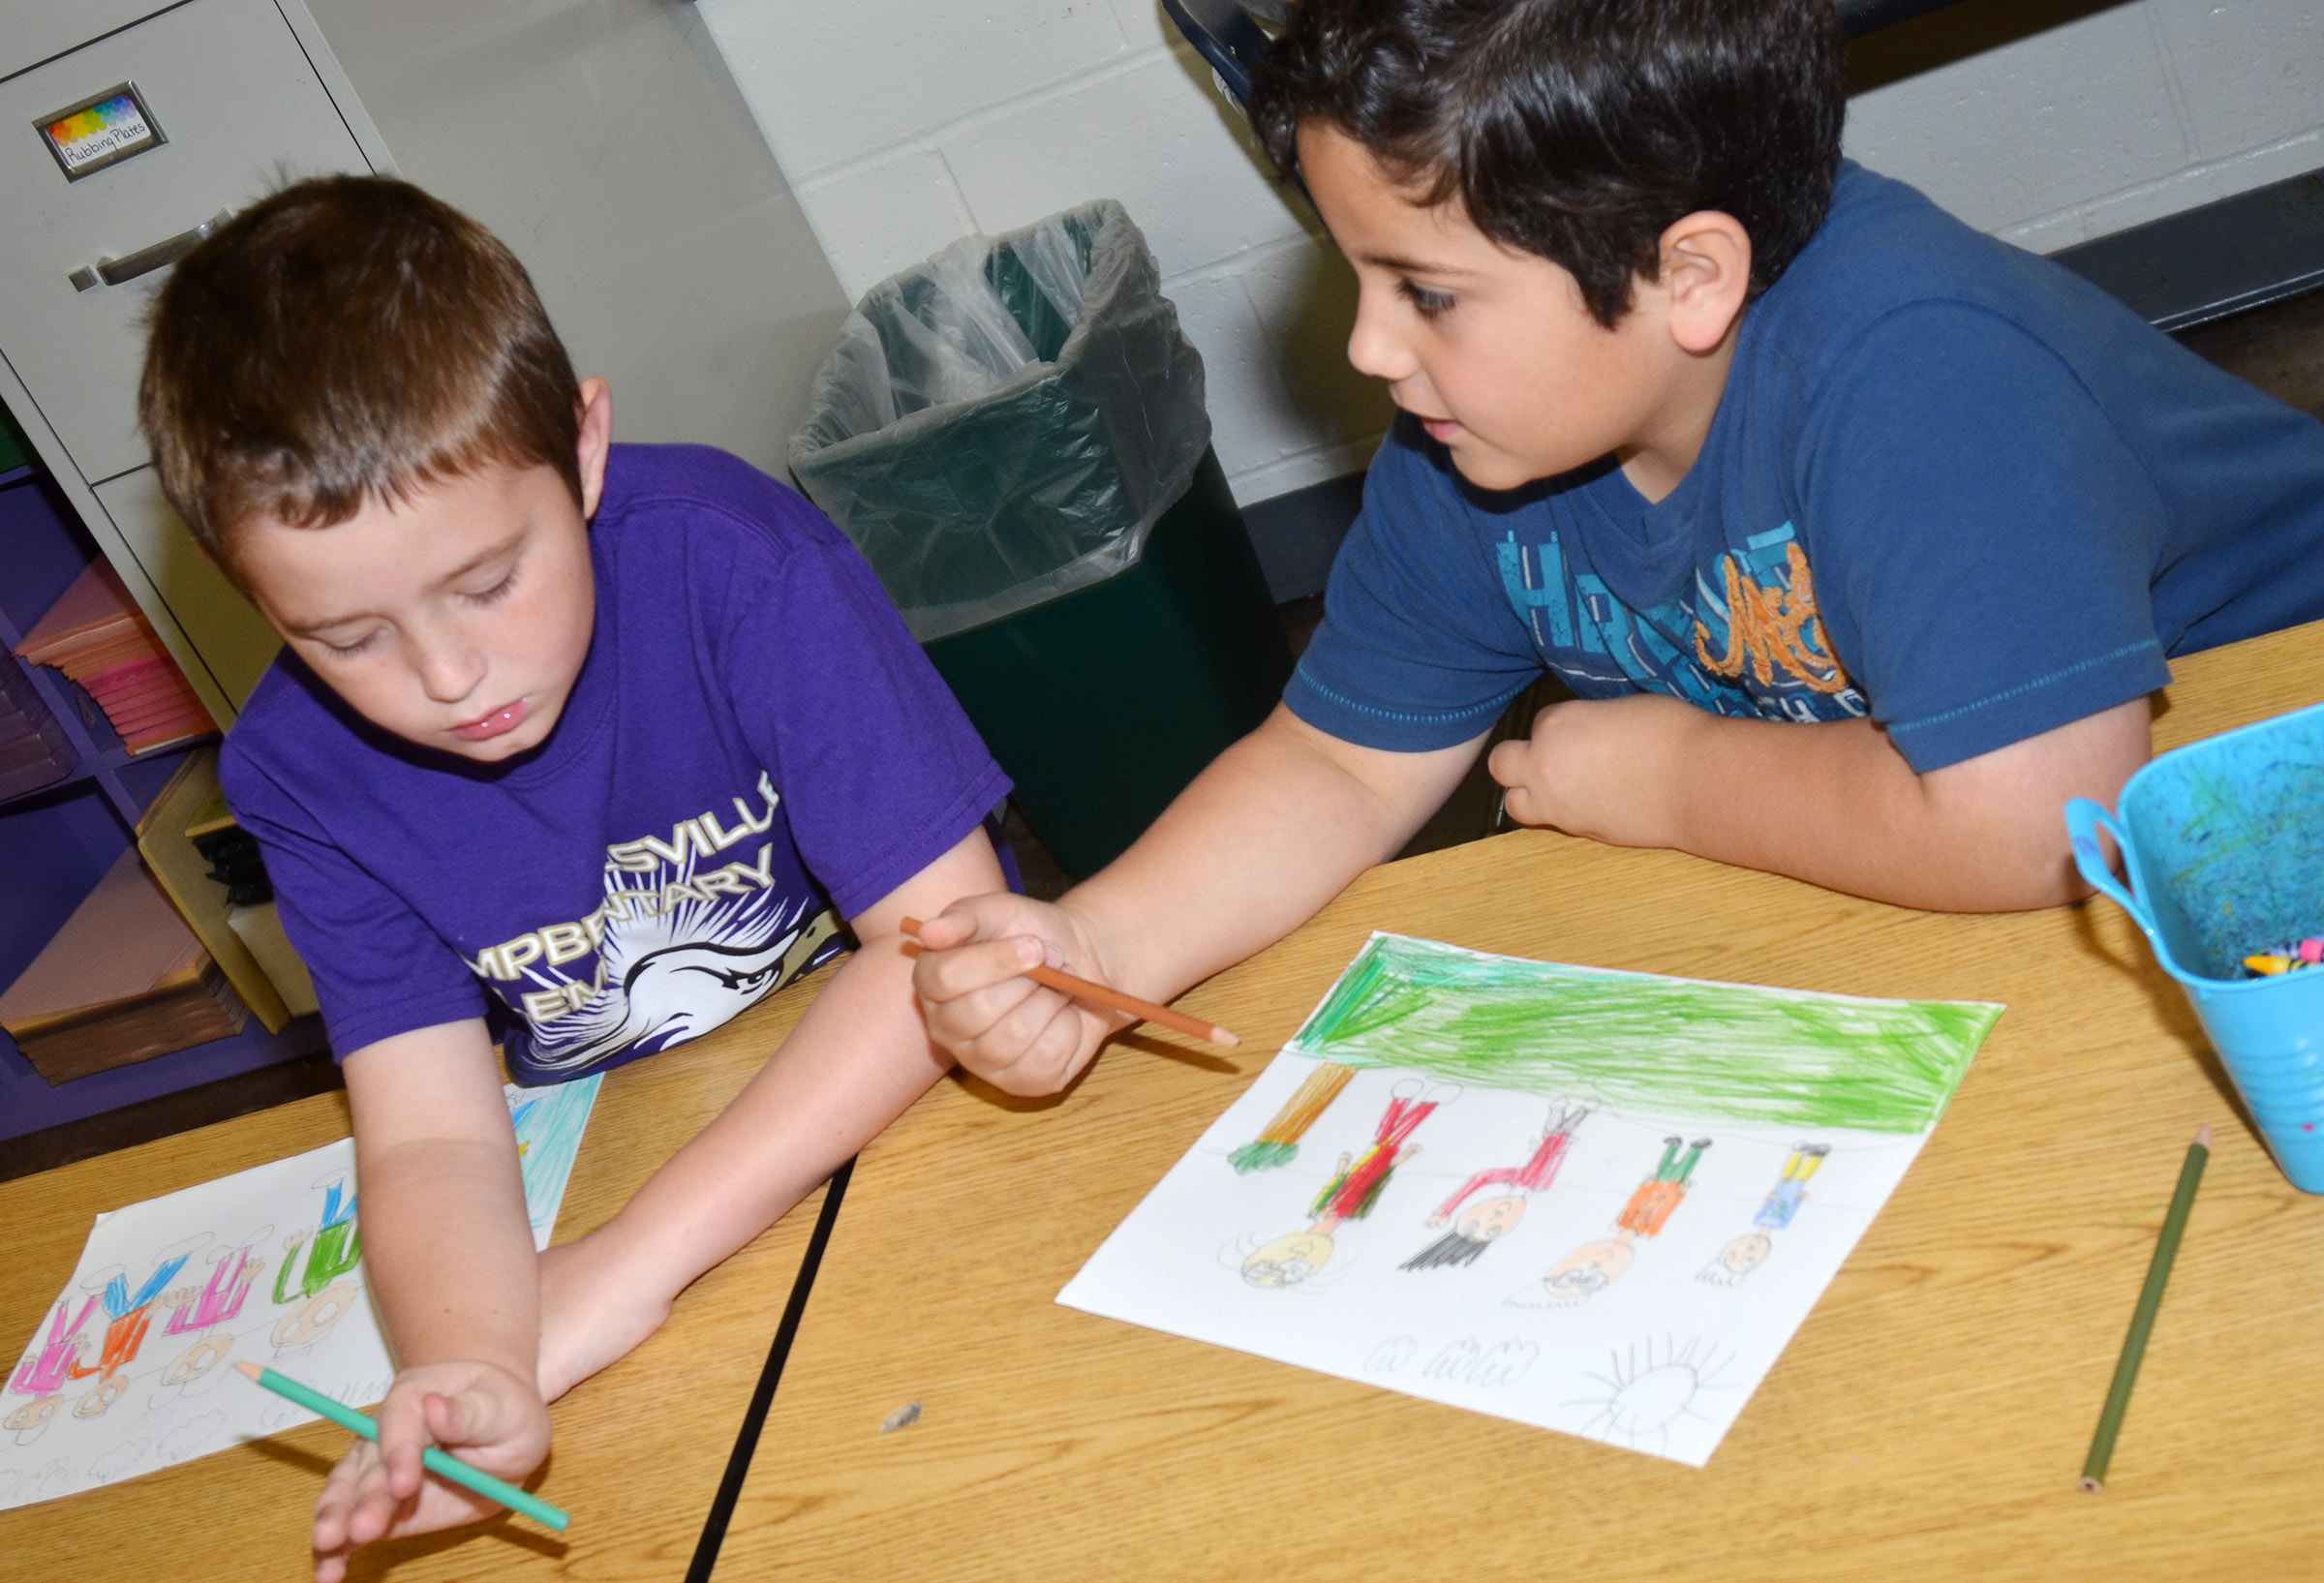 CES second-graders Kevin Bradfield, at left, and Nicholas Almeida talk as they color their family portraits.